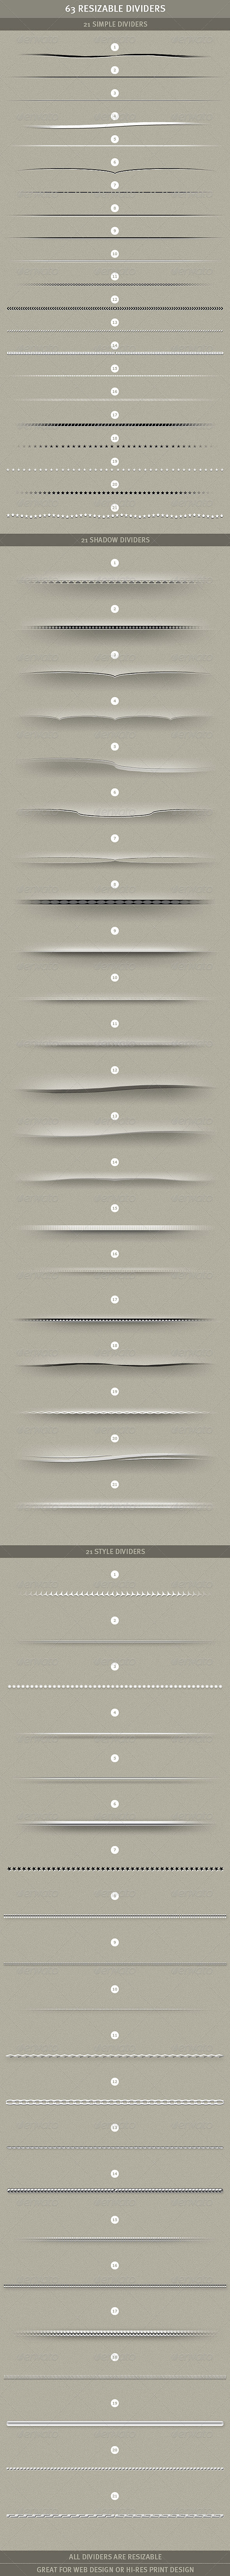 63 Resizable Dividers - Miscellaneous Web Elements